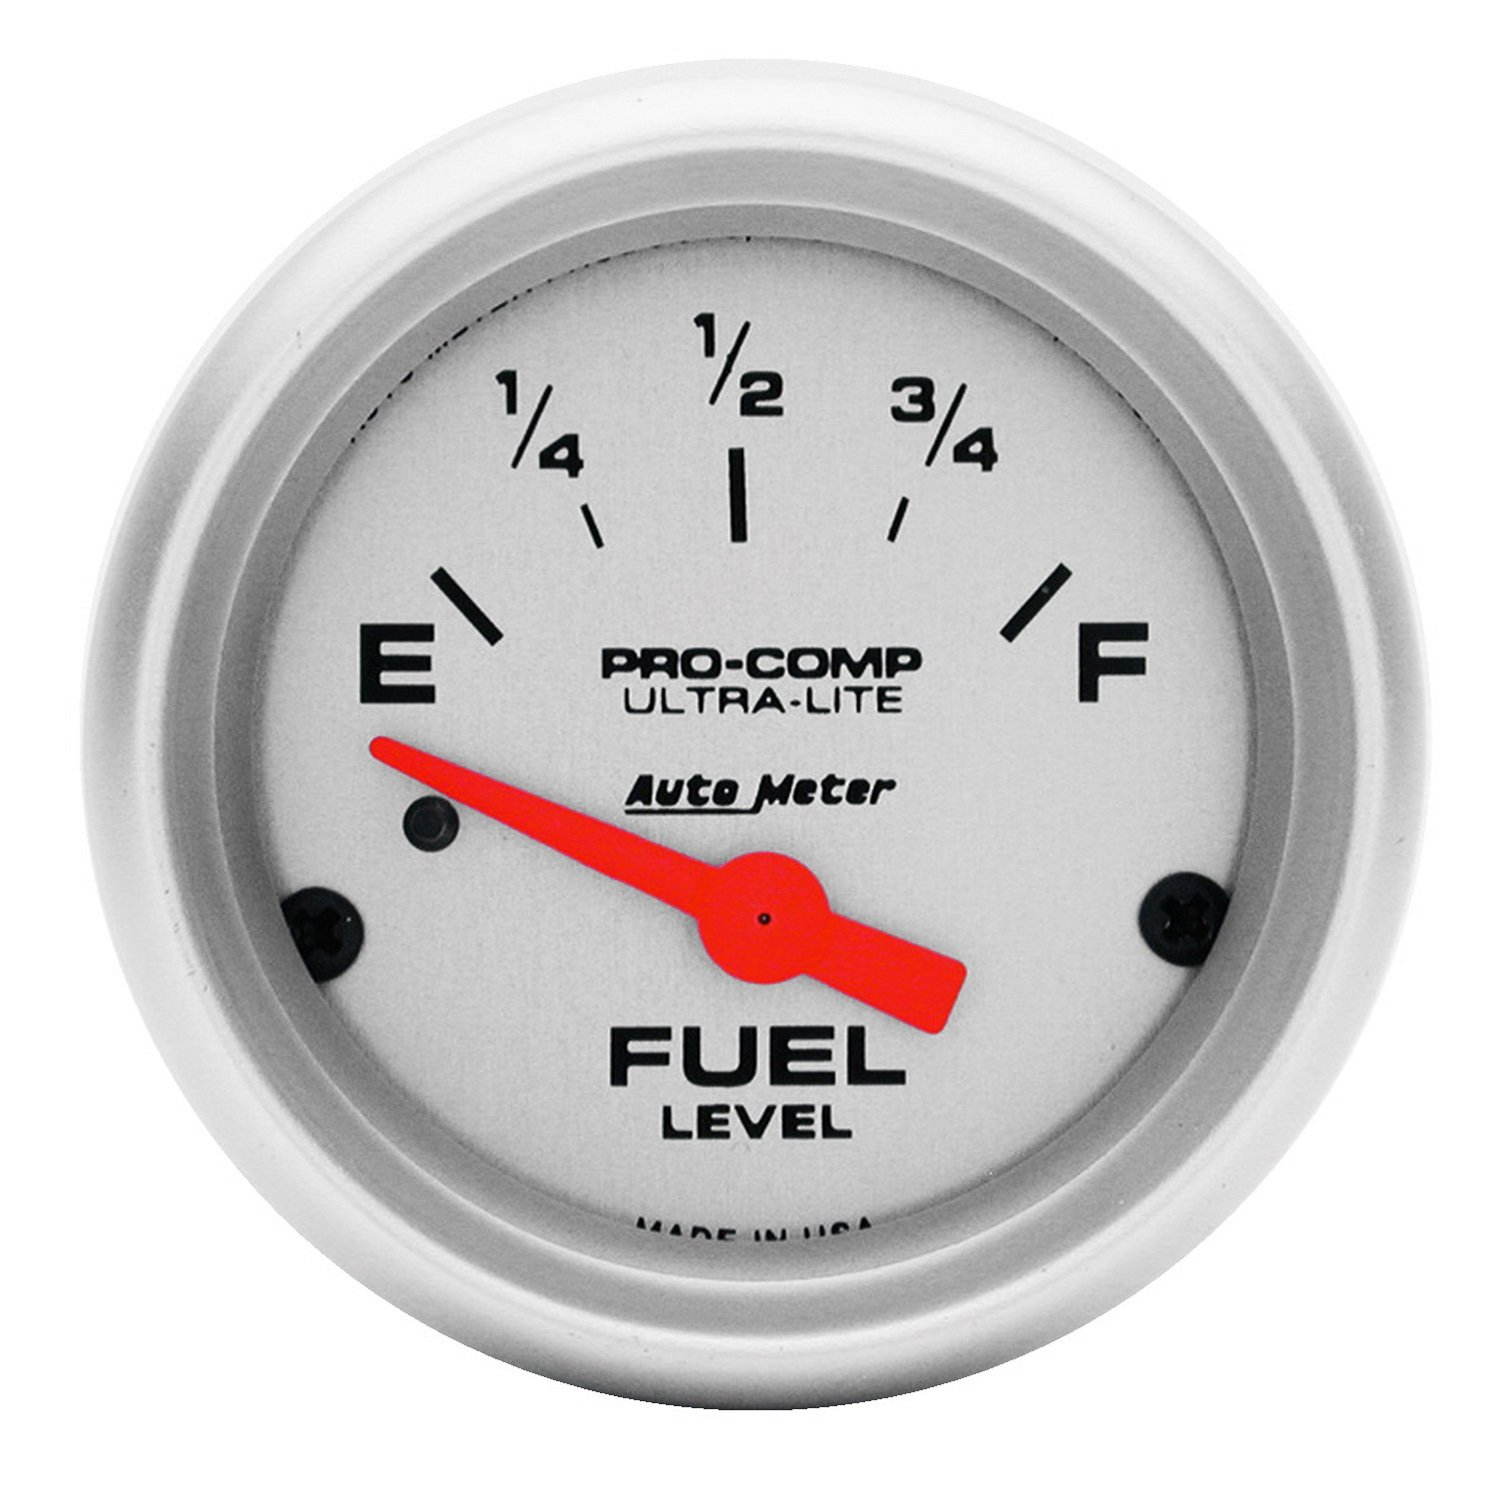 Auto Meter 4314 Ultra-Lite Electric Fuel Level Gauge by AUTO METER